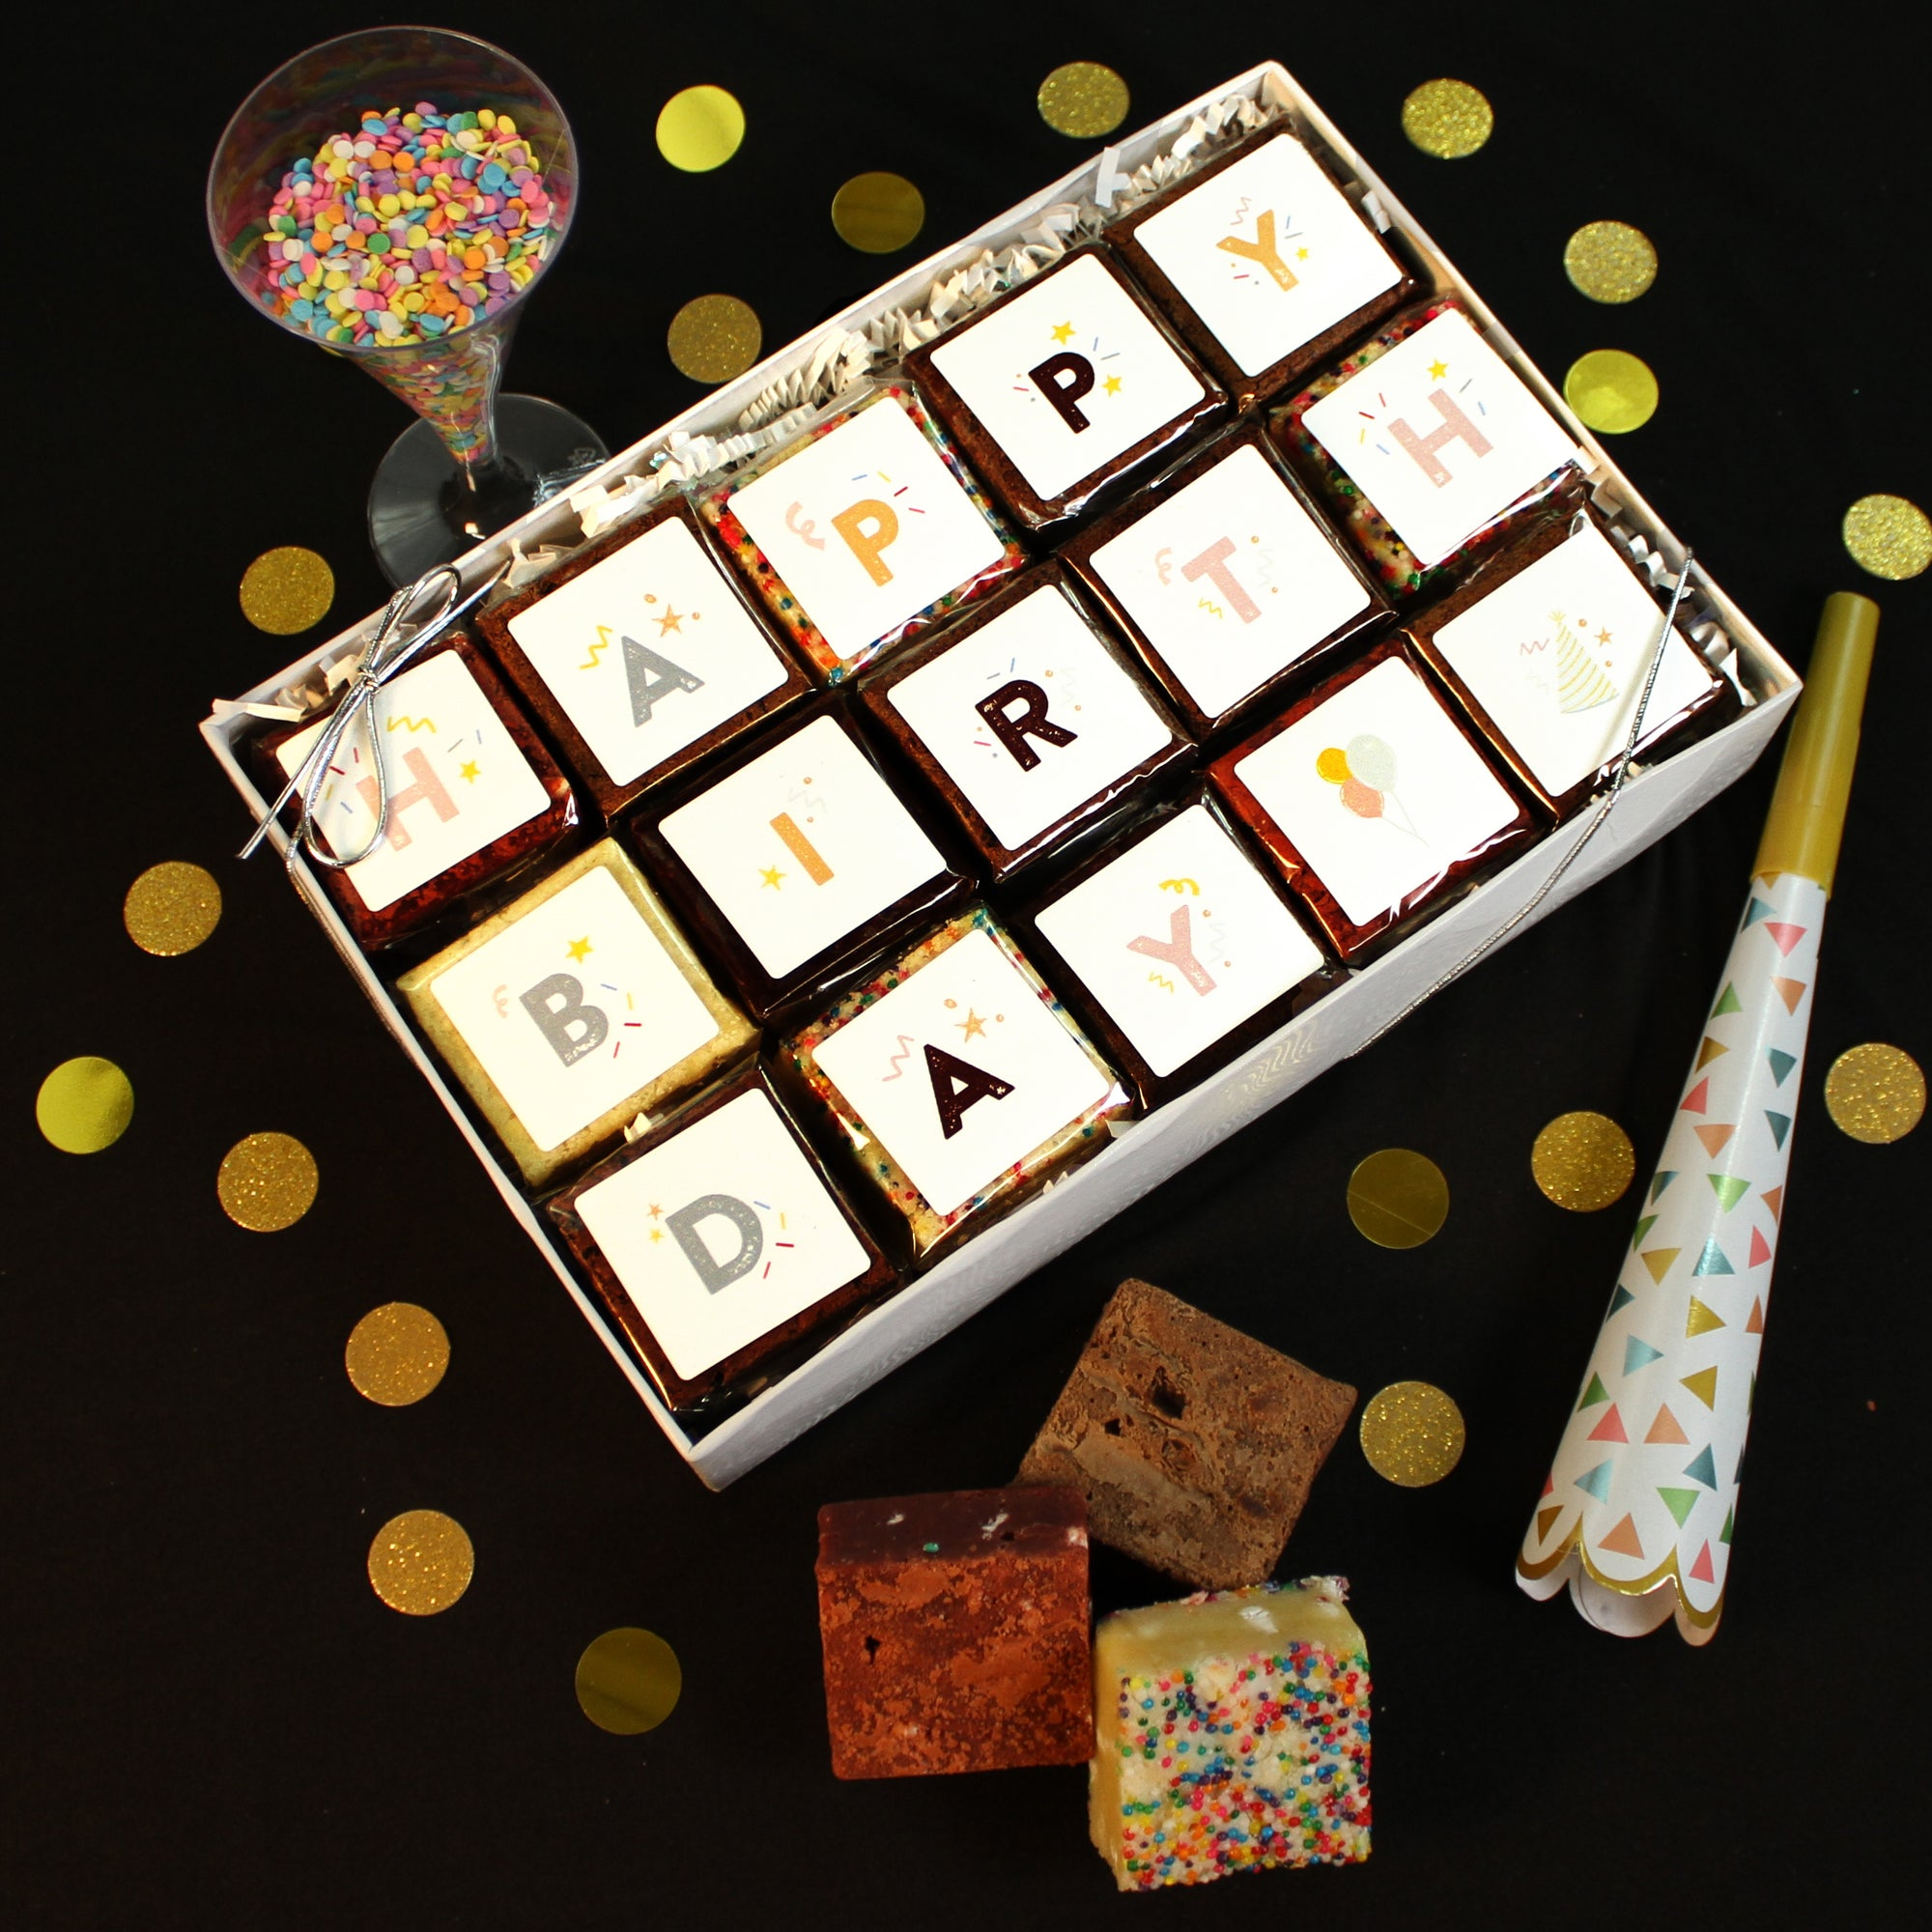 Delicous Birthday Gift. Birthday BrownieGram-Small Batch Brownies